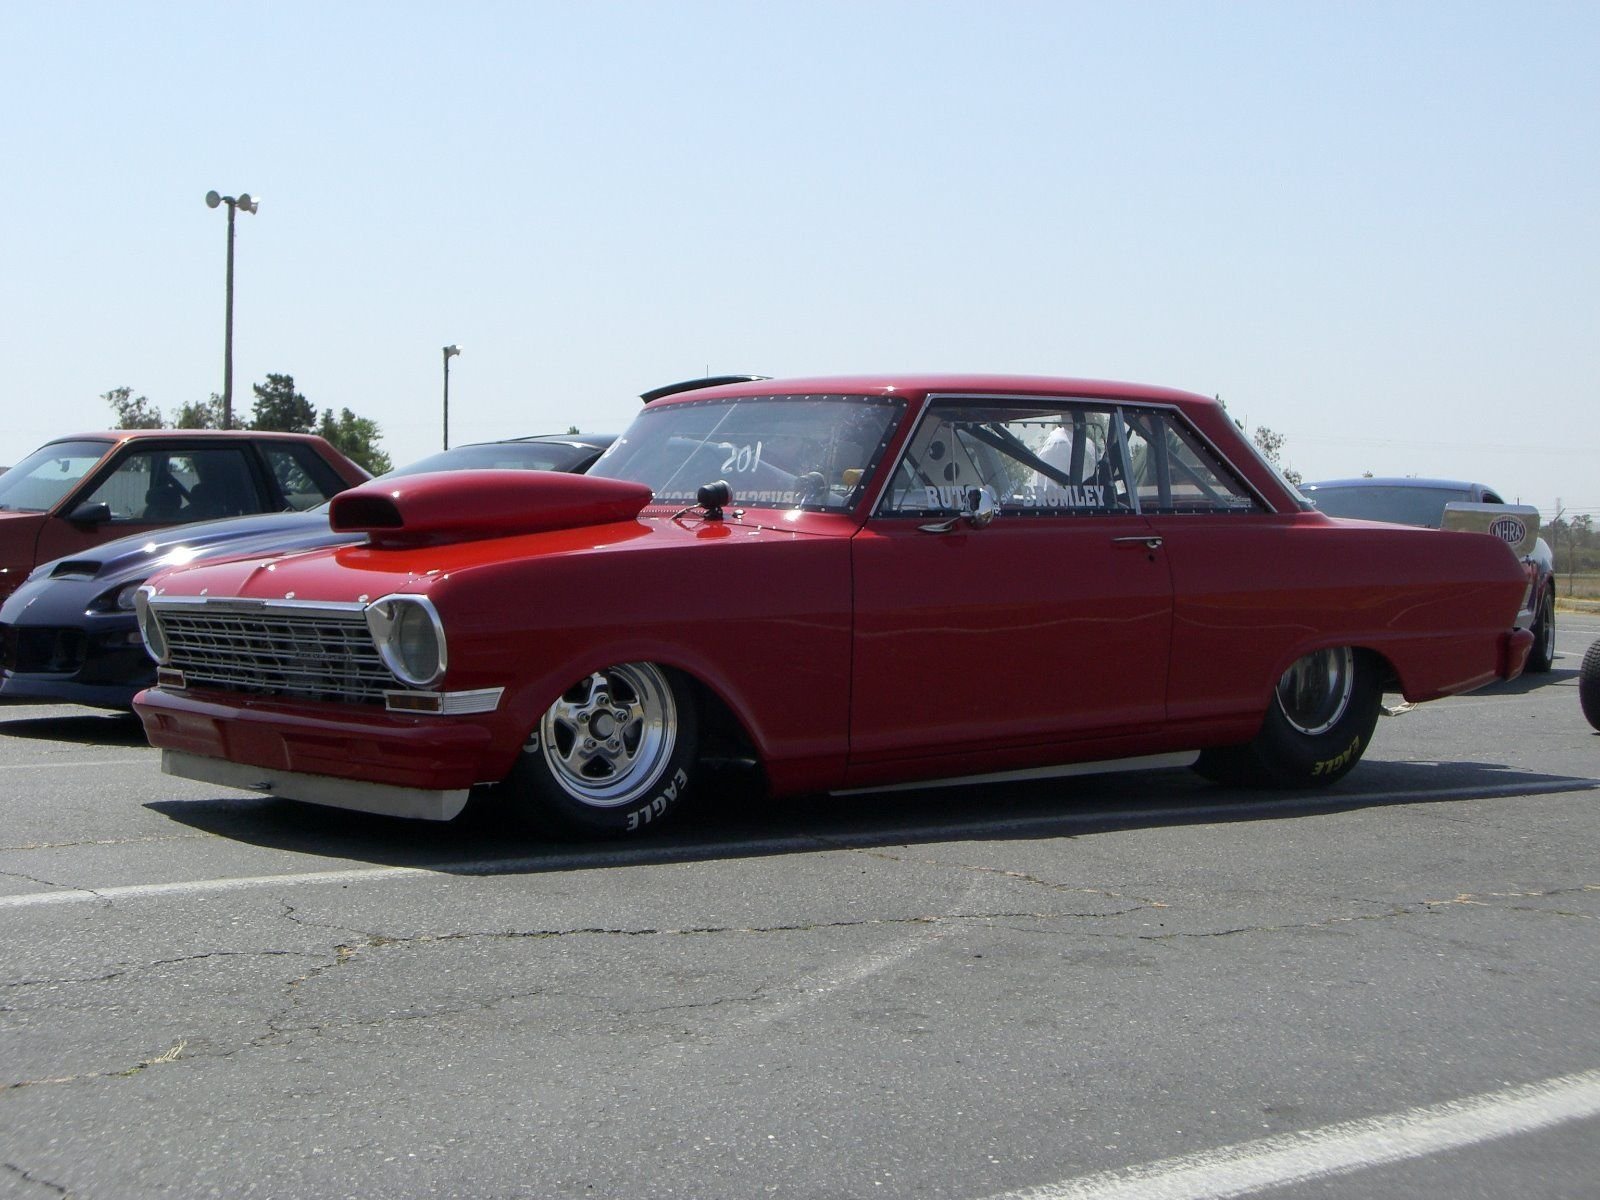 1964 chevrolet nova drag racing race car chevy ii hot street rod race cars for sale. Black Bedroom Furniture Sets. Home Design Ideas